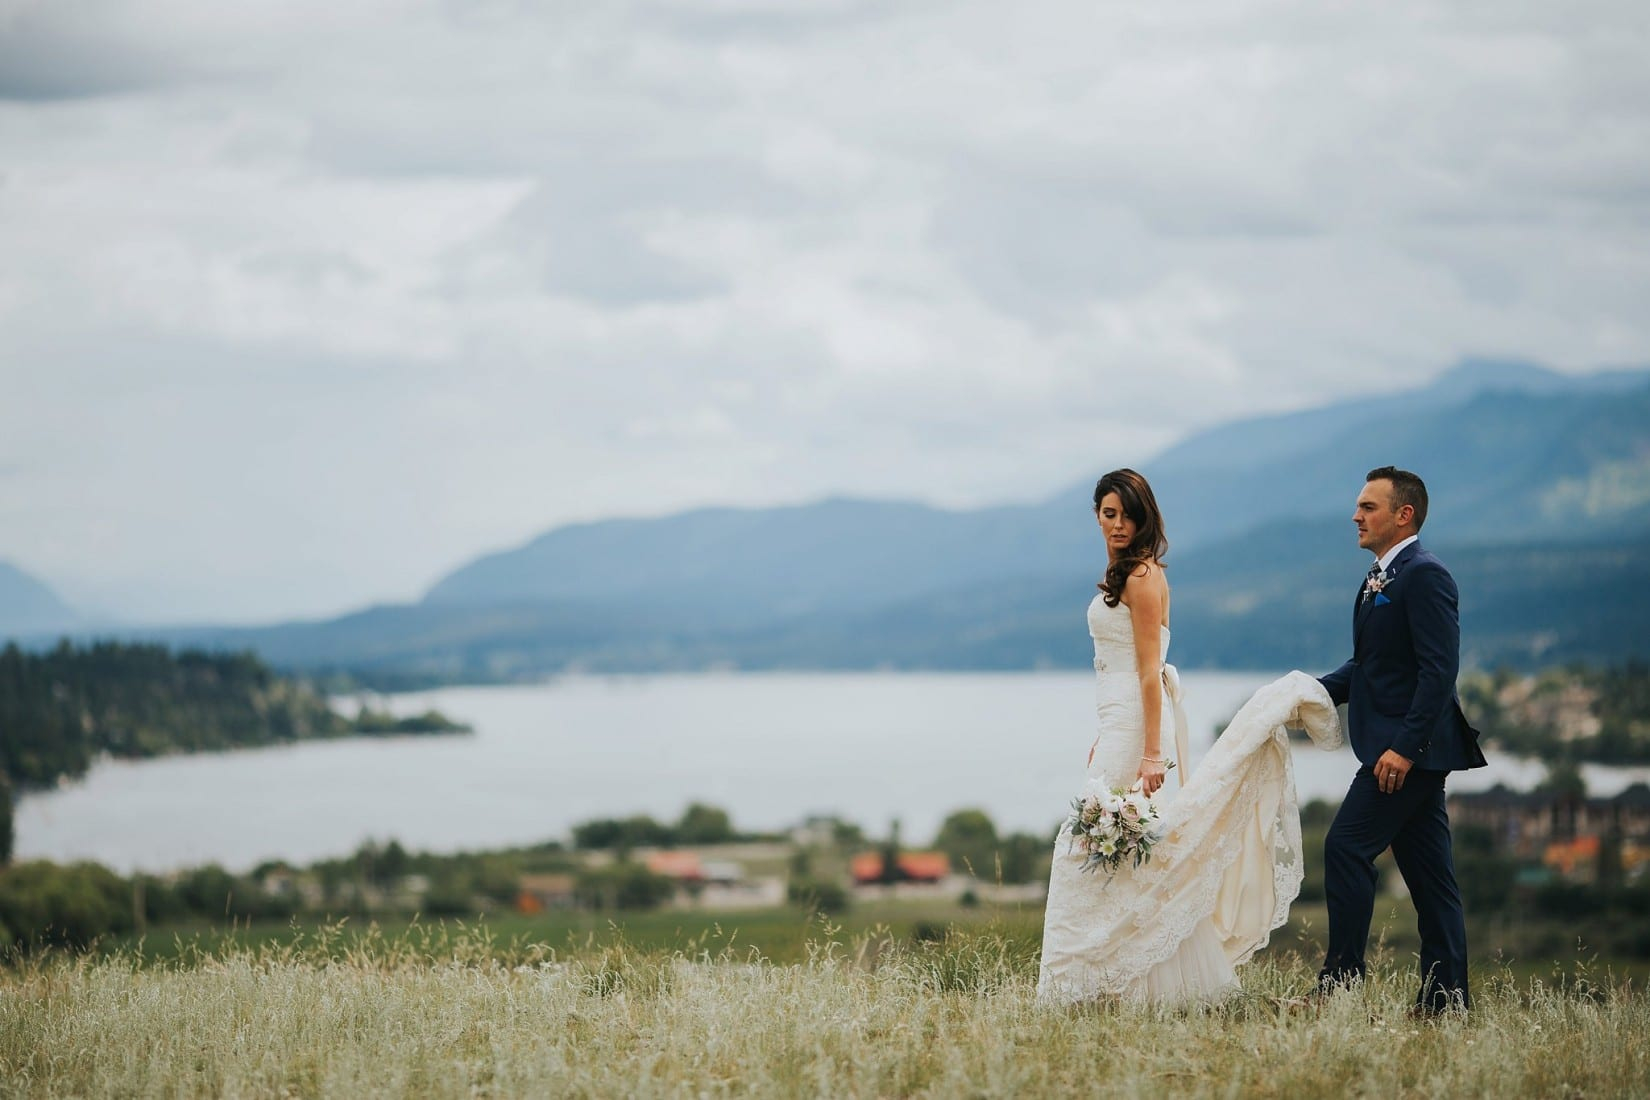 Copper Point Resort Invermere BC Wedding Photographer